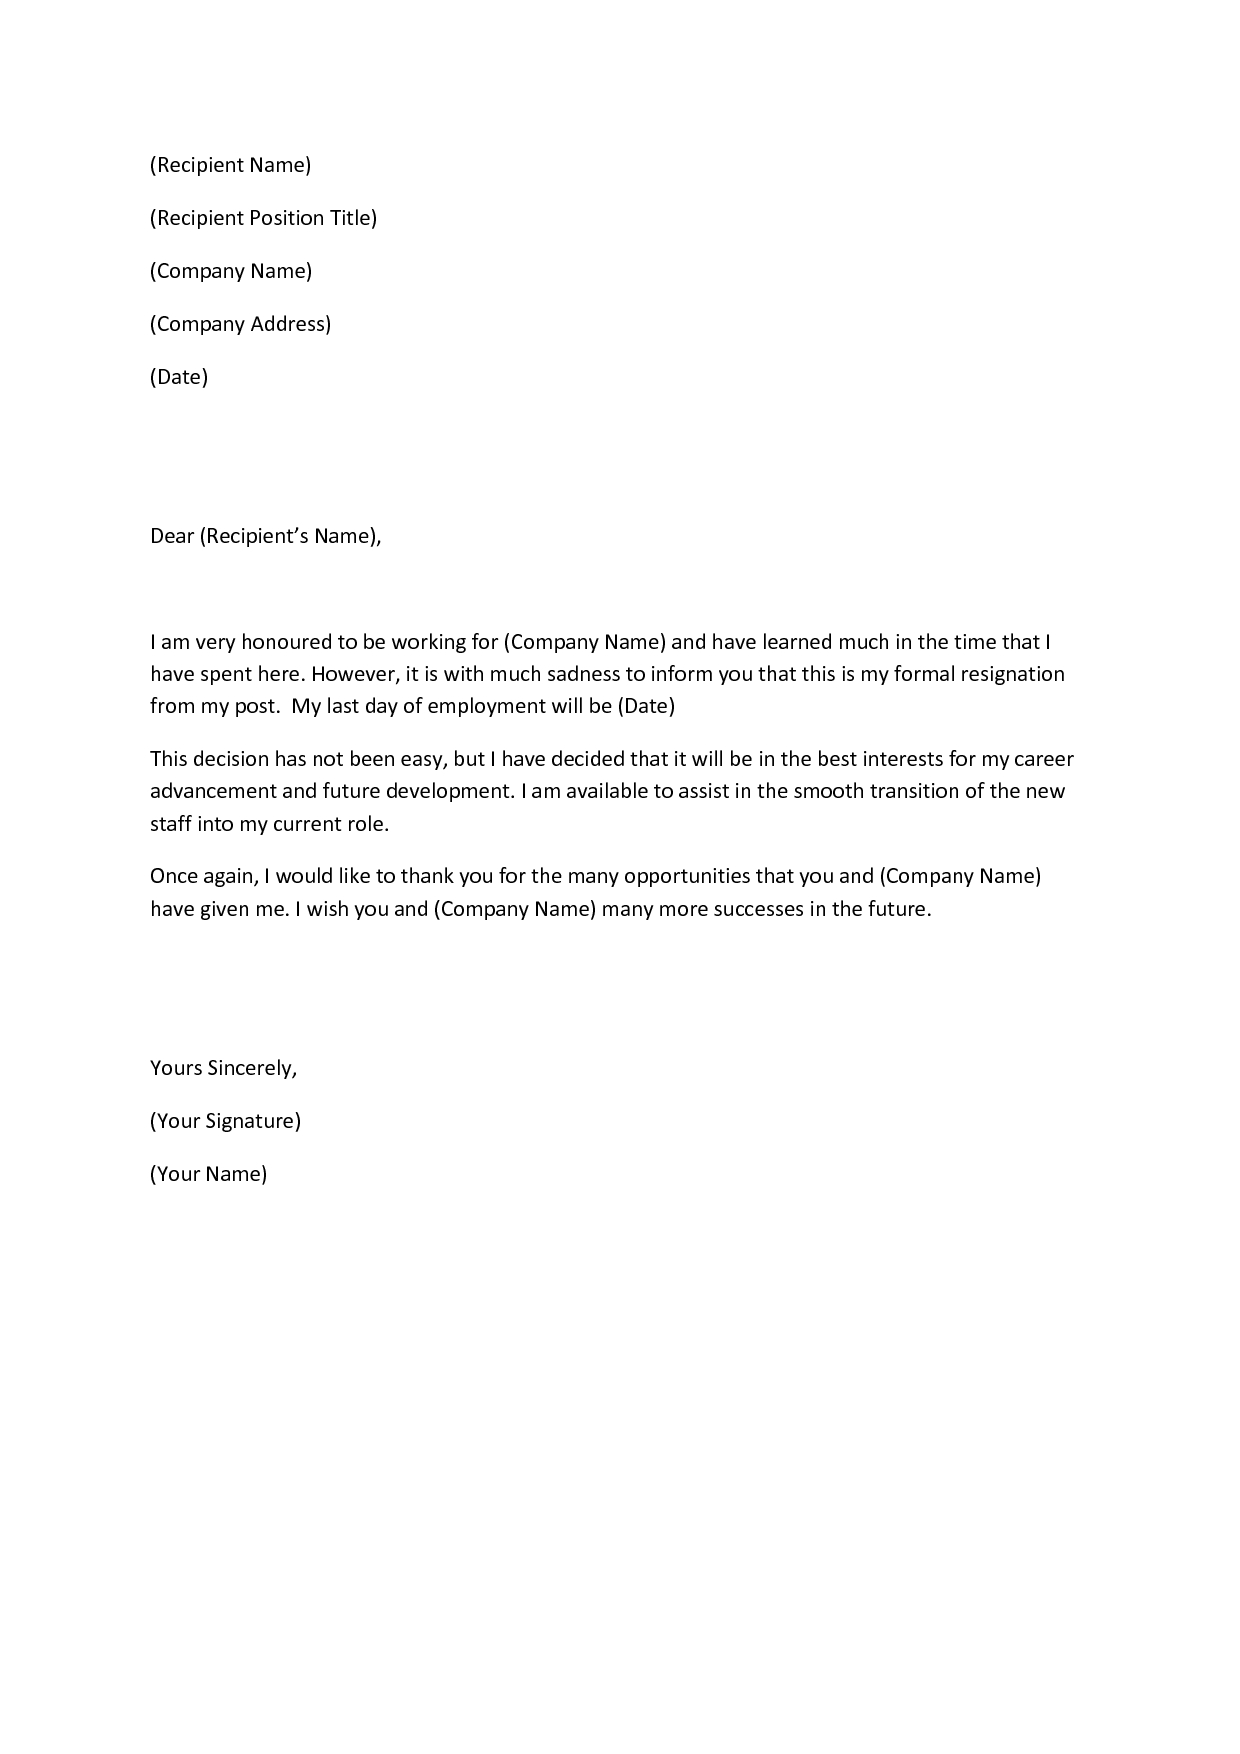 Company Business Reference Letter Template - This Article Will Include Multiple Sample Letters for Quitting A Job